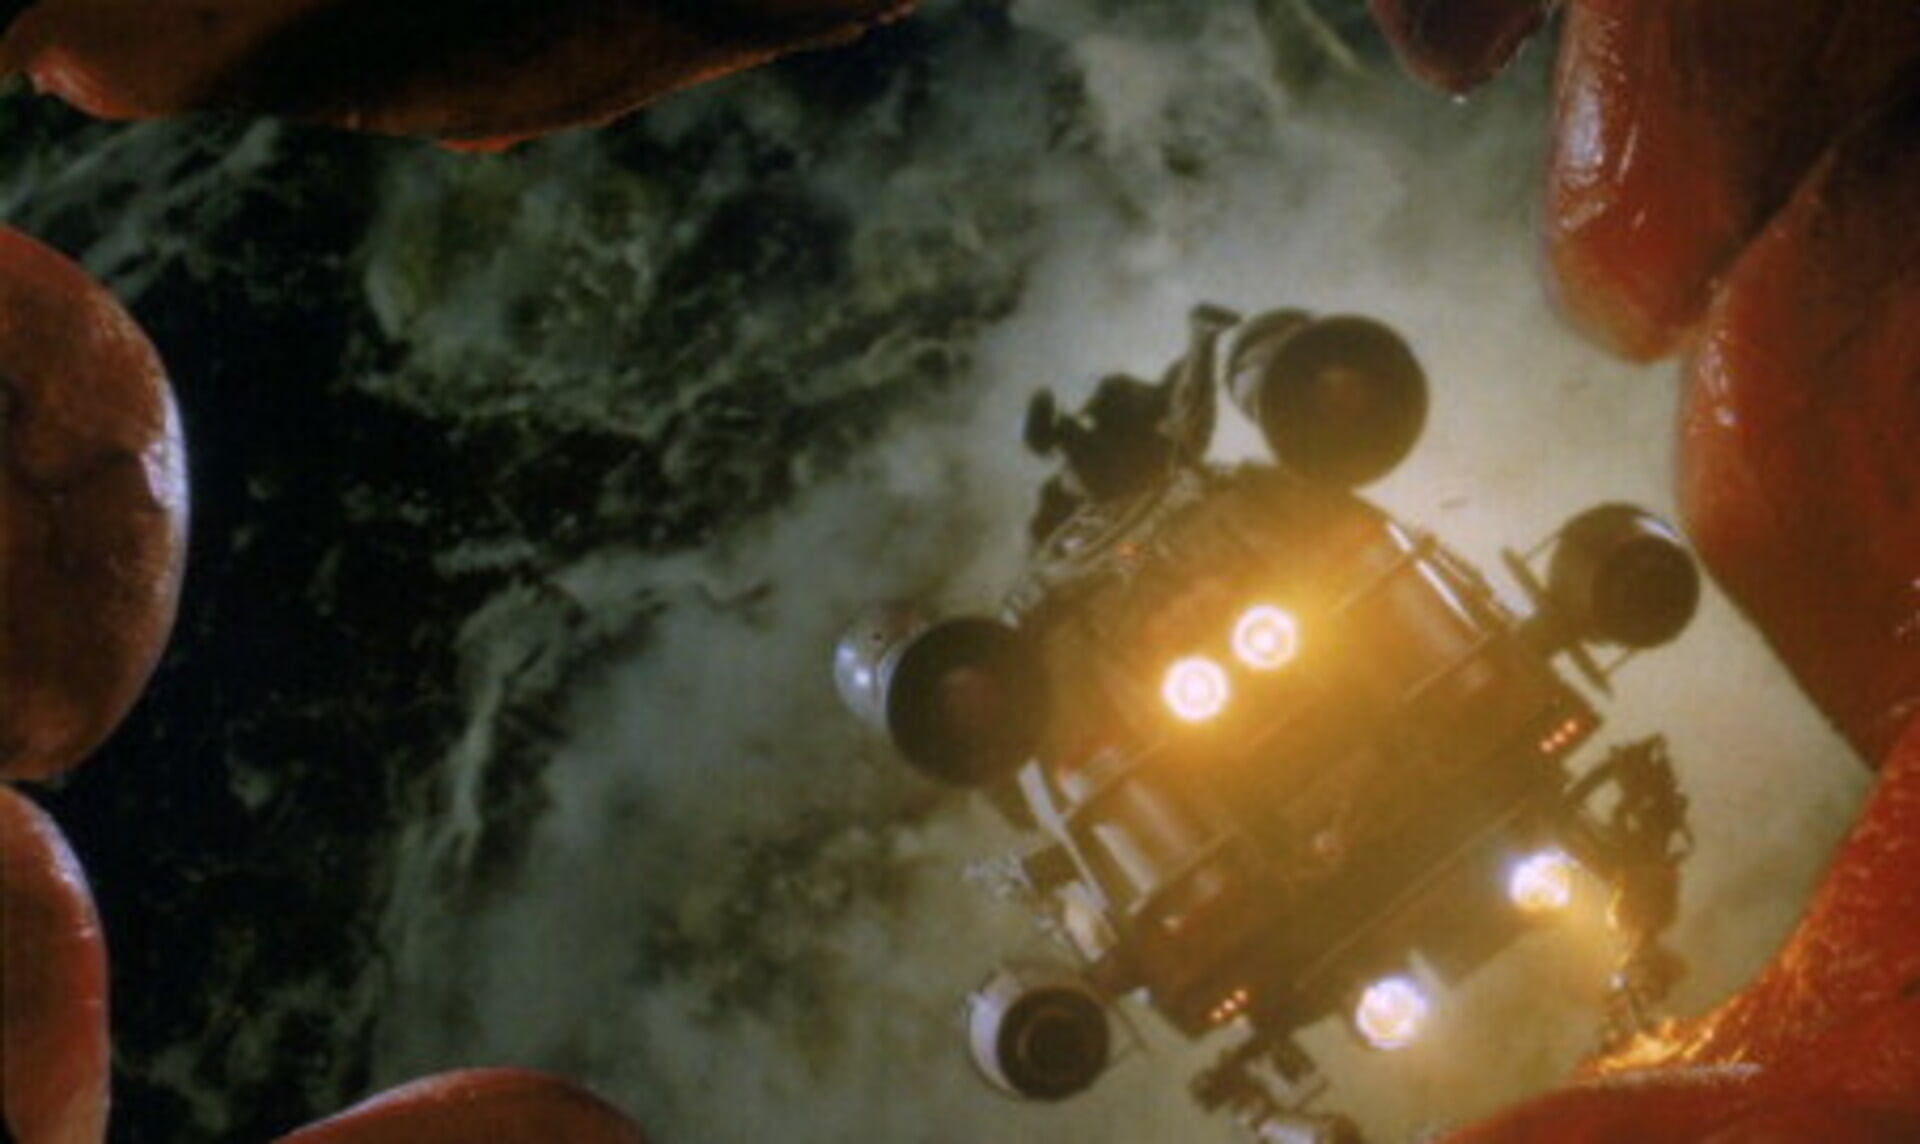 Innerspace - Image 7